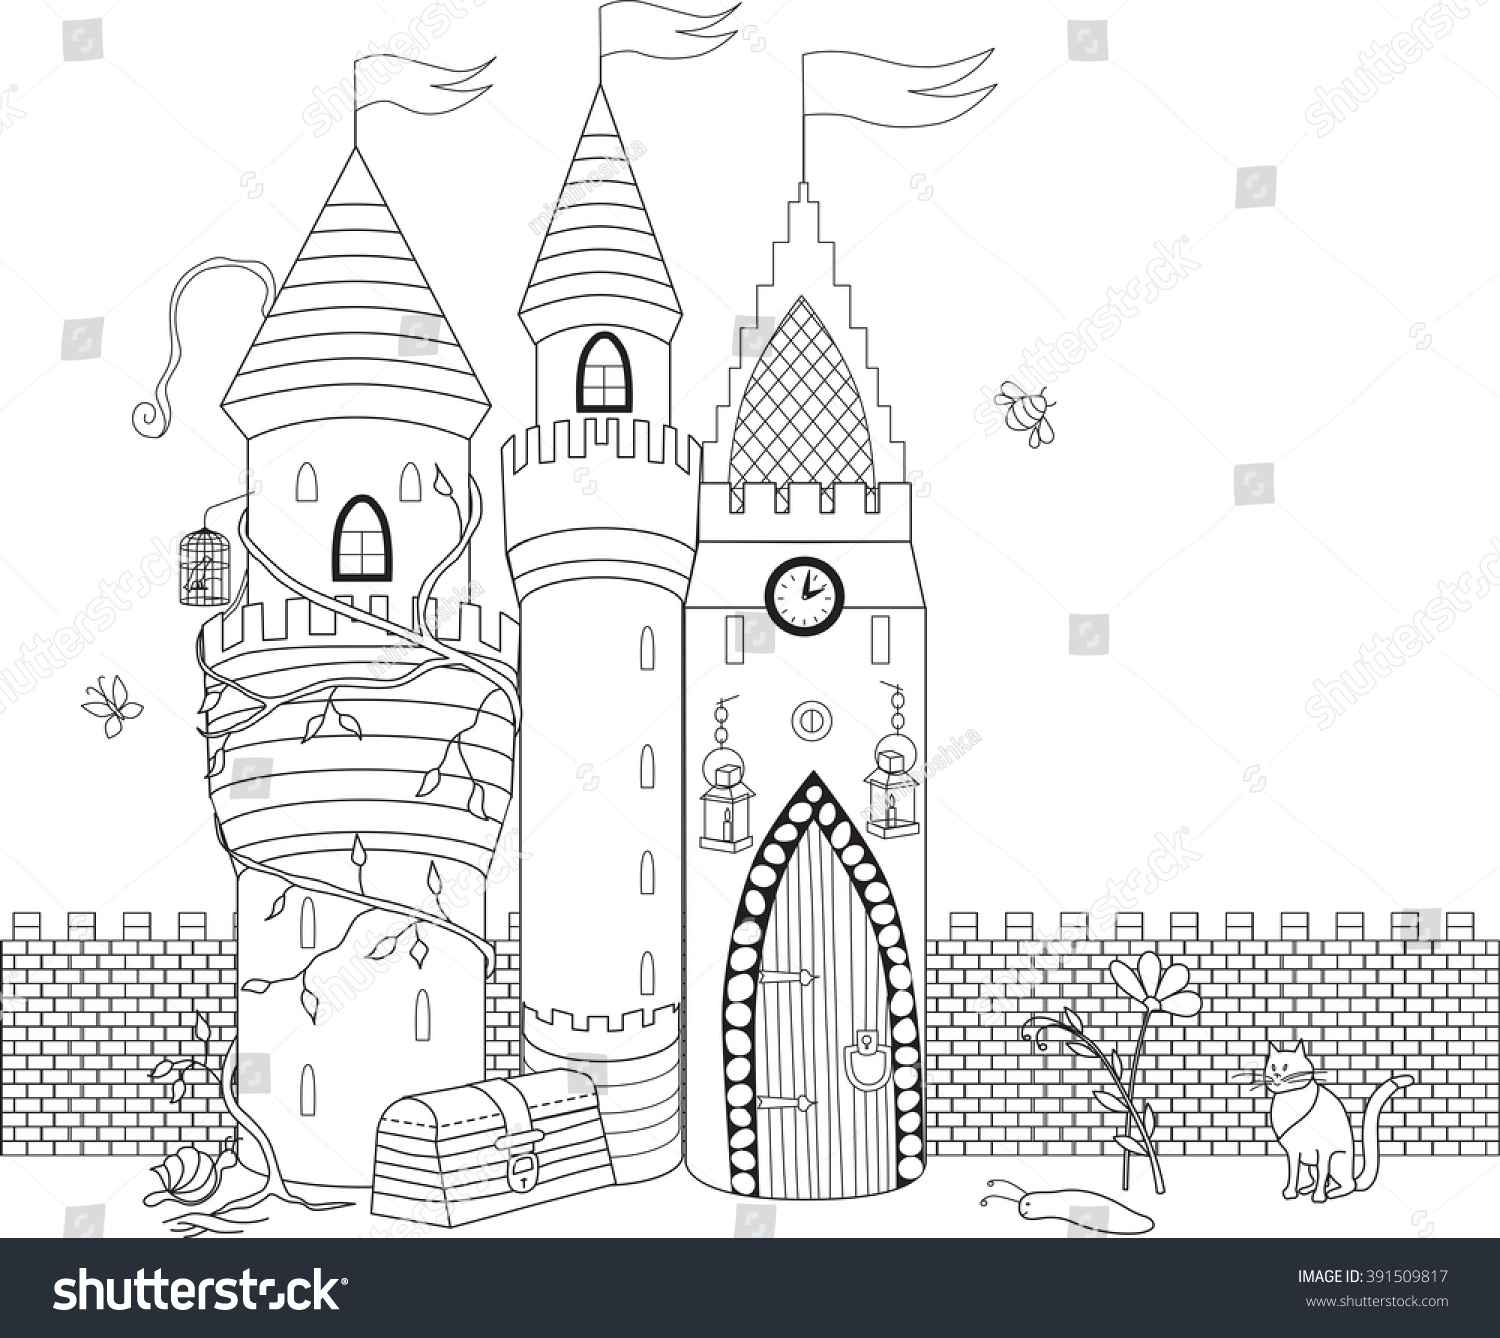 coloring book older children coloring stock vector 391509817